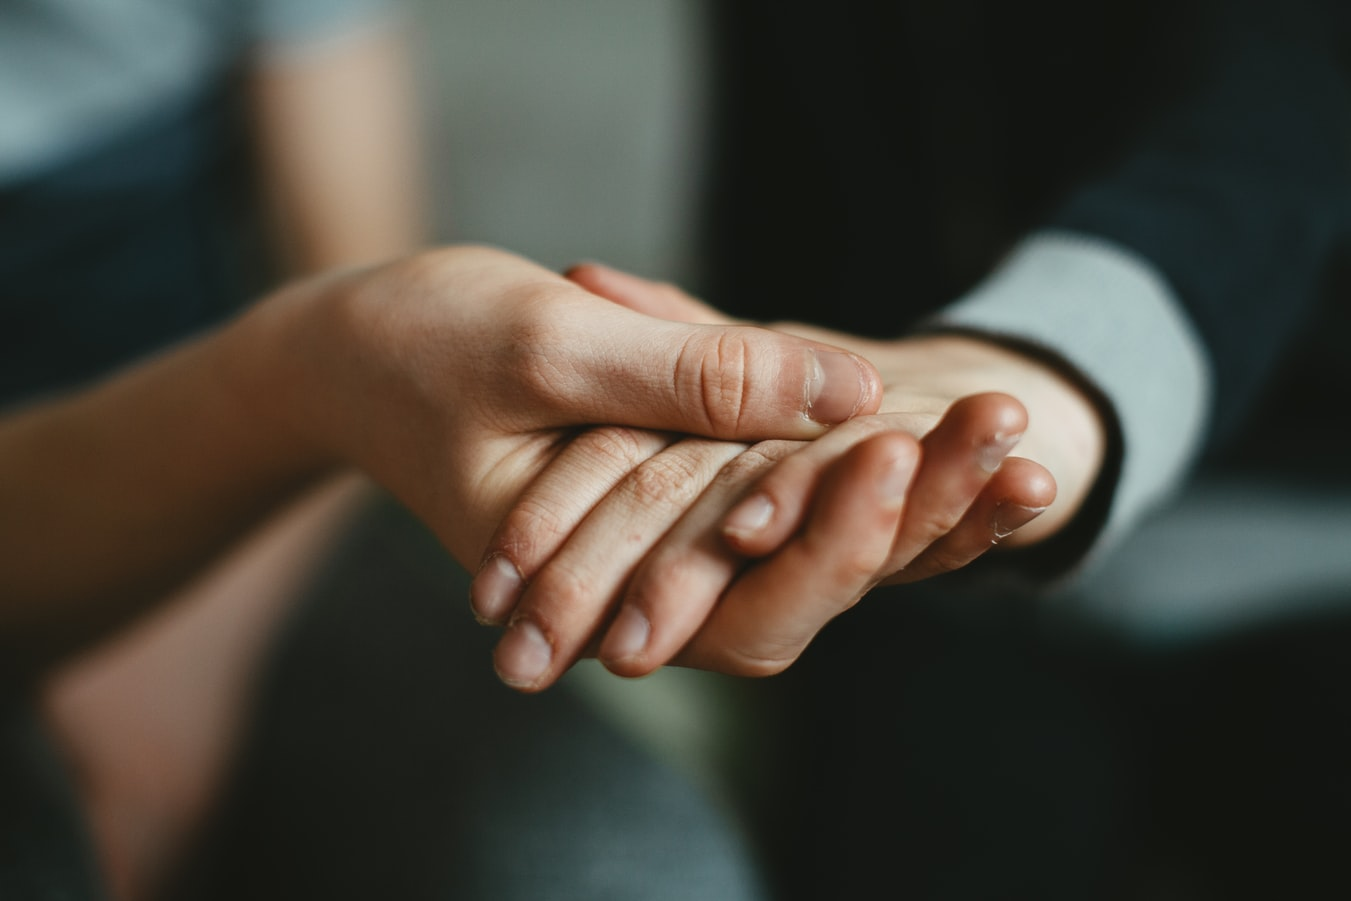 two people holding hands in support and care